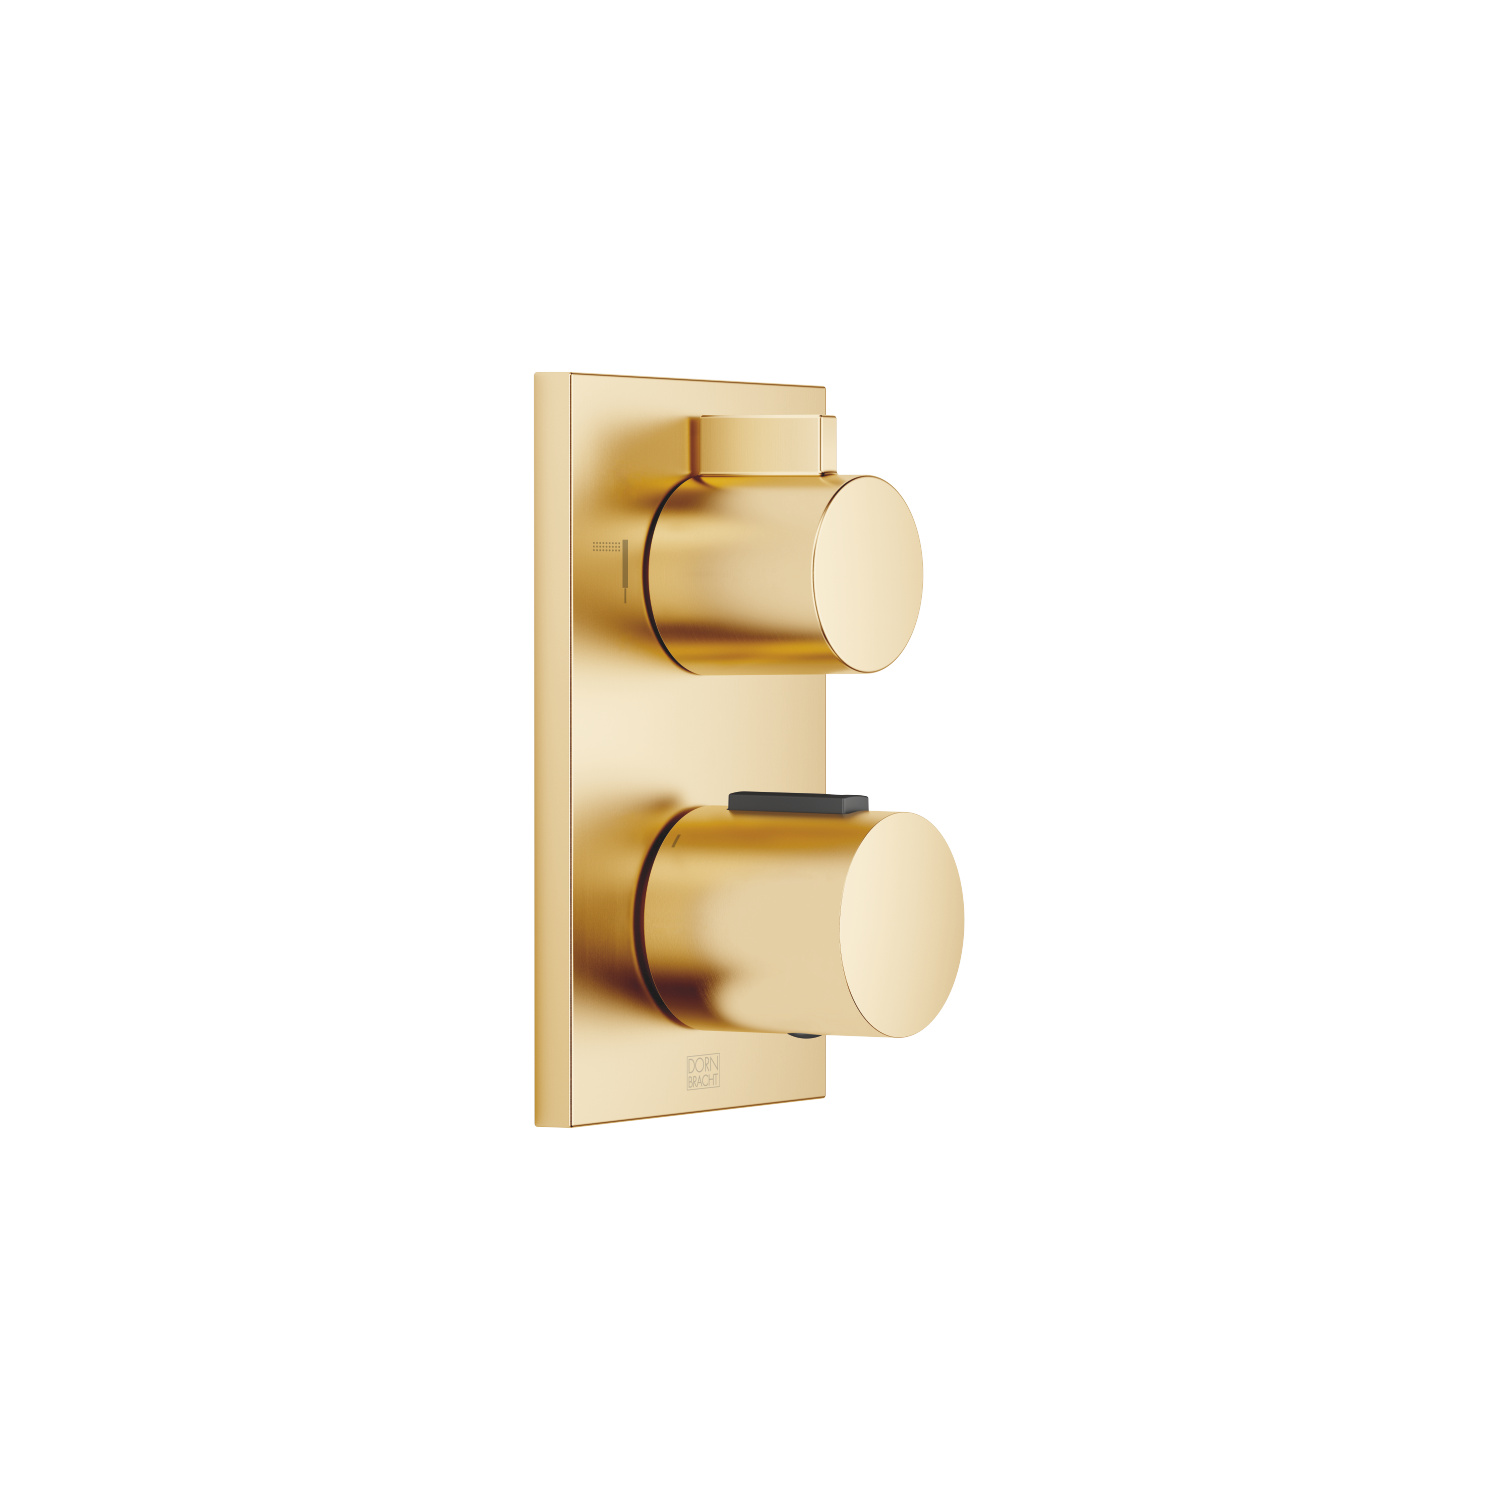 Concealed thermostat with two-way volume control - Brushed Durabrass